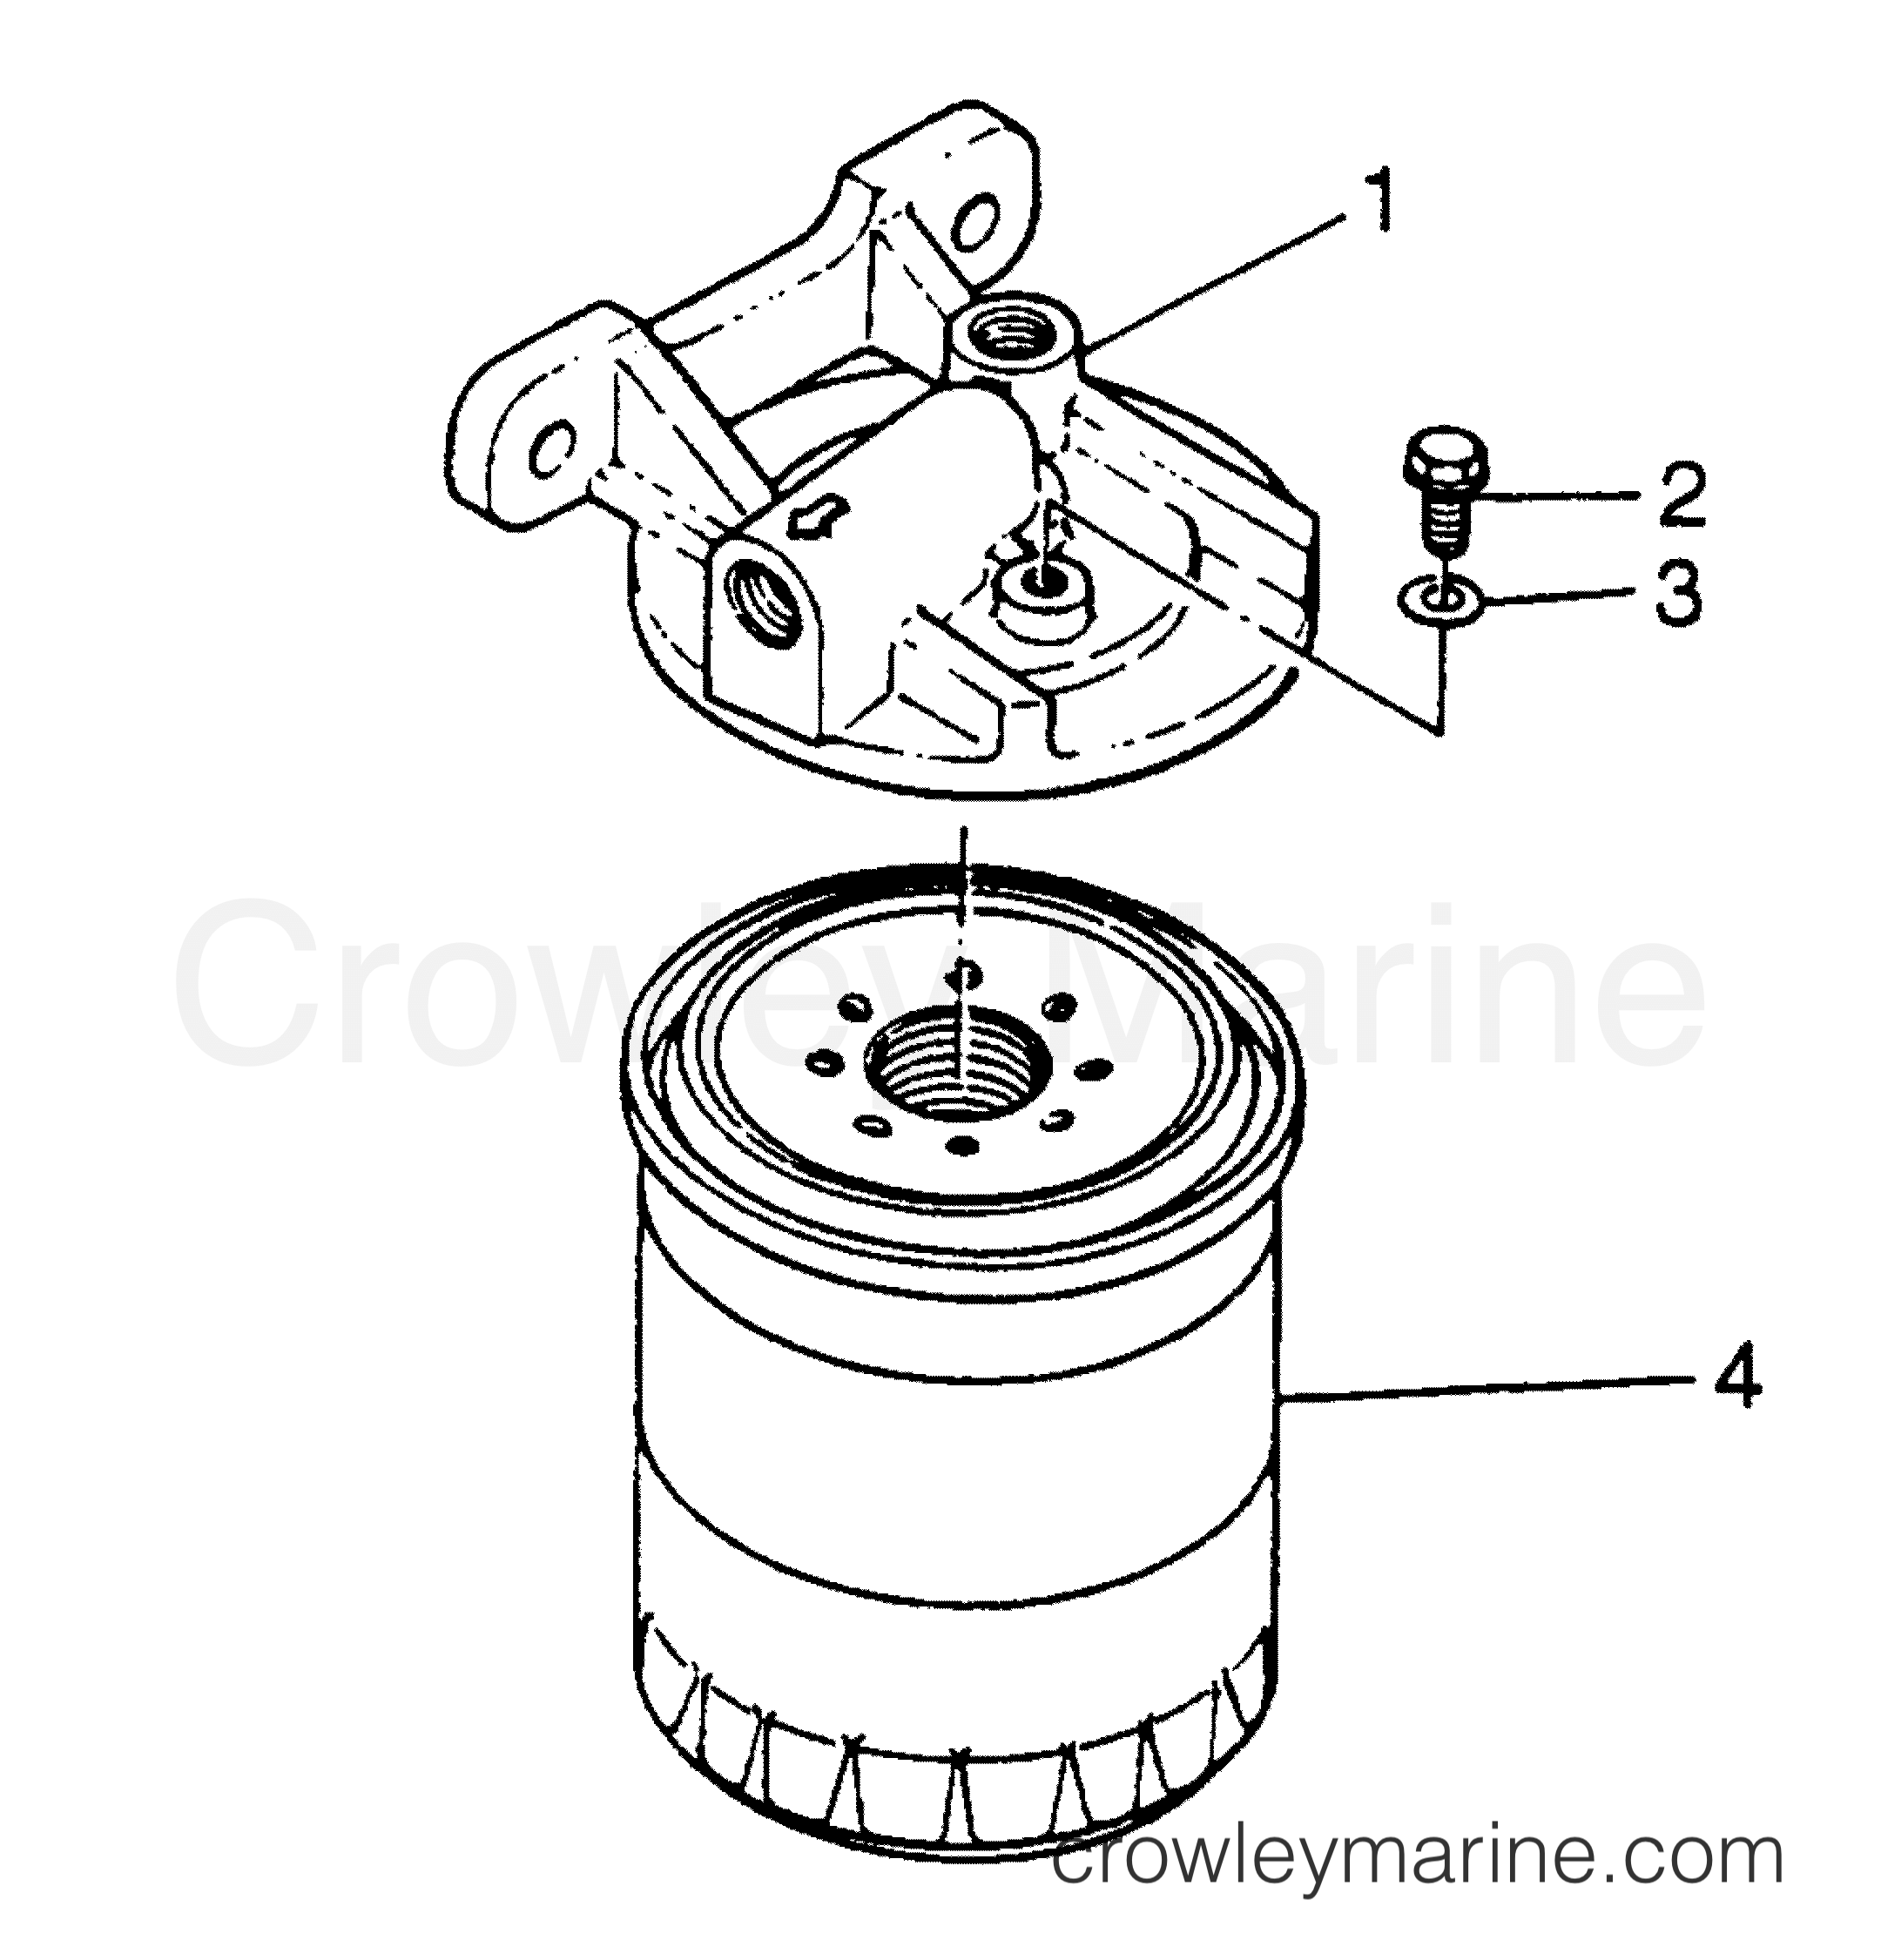 filter assembly - fuel